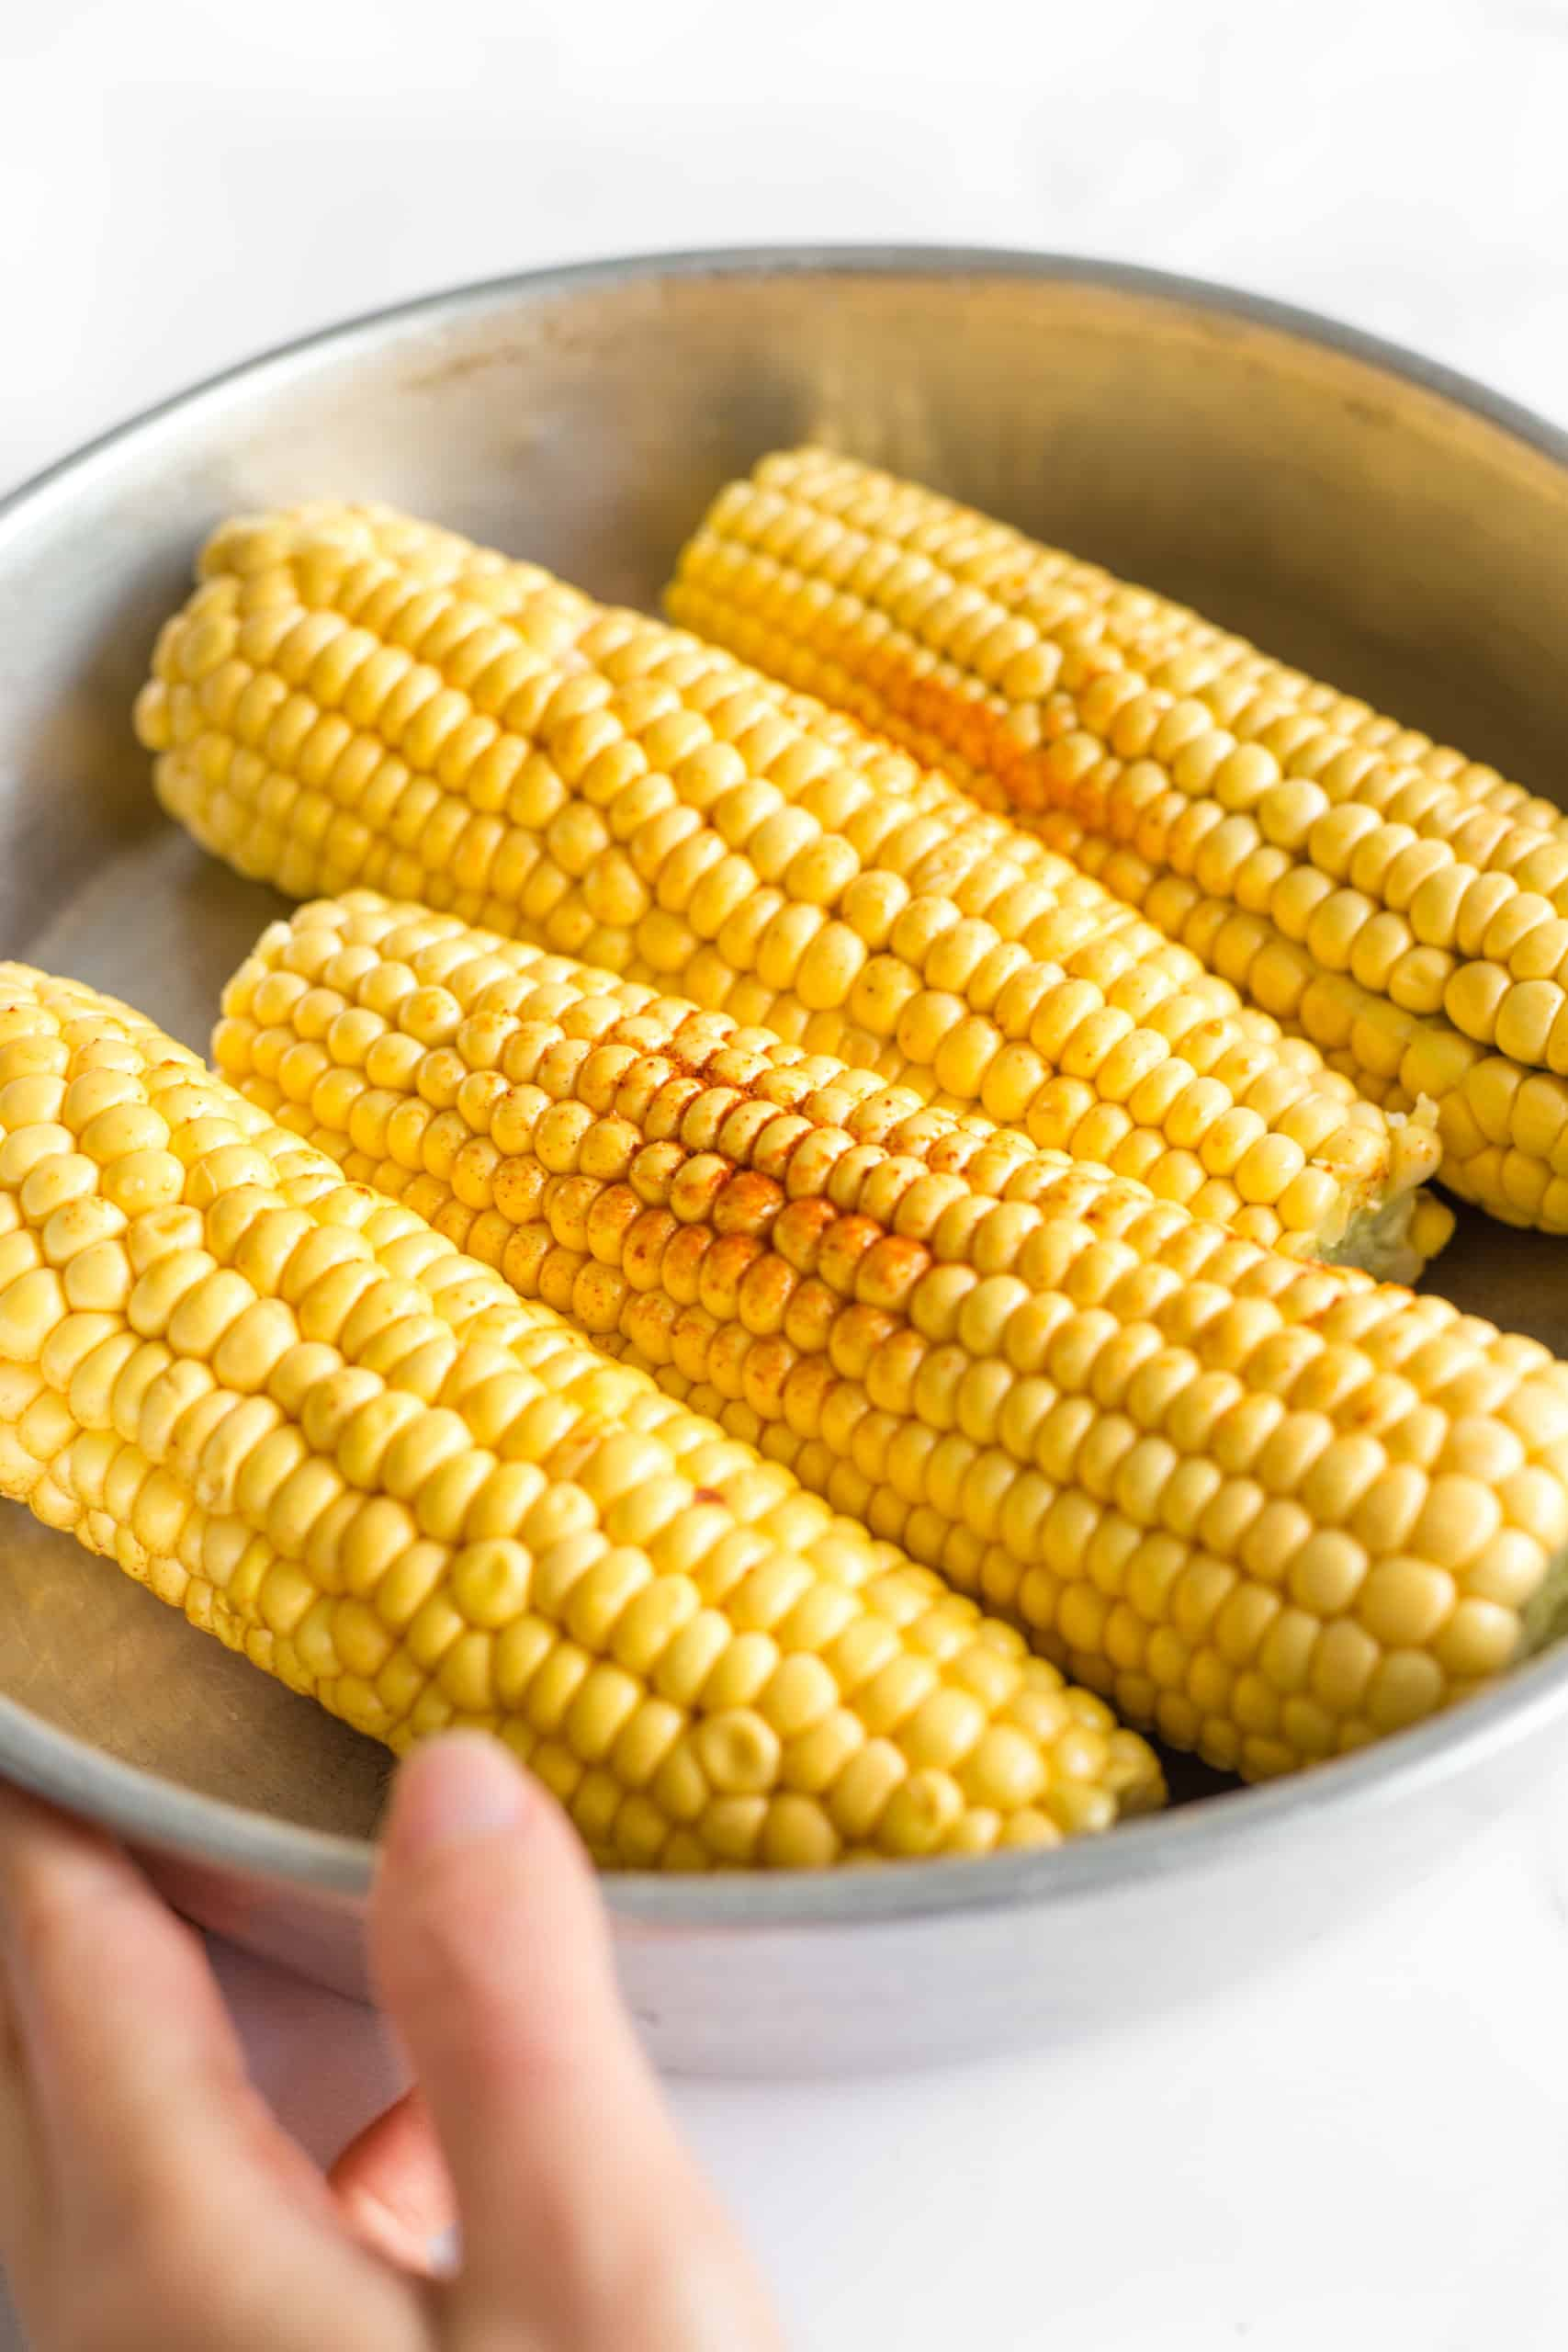 Hand holding a metal bowl of fresh corn on the cob sprinkled with ground paprika.